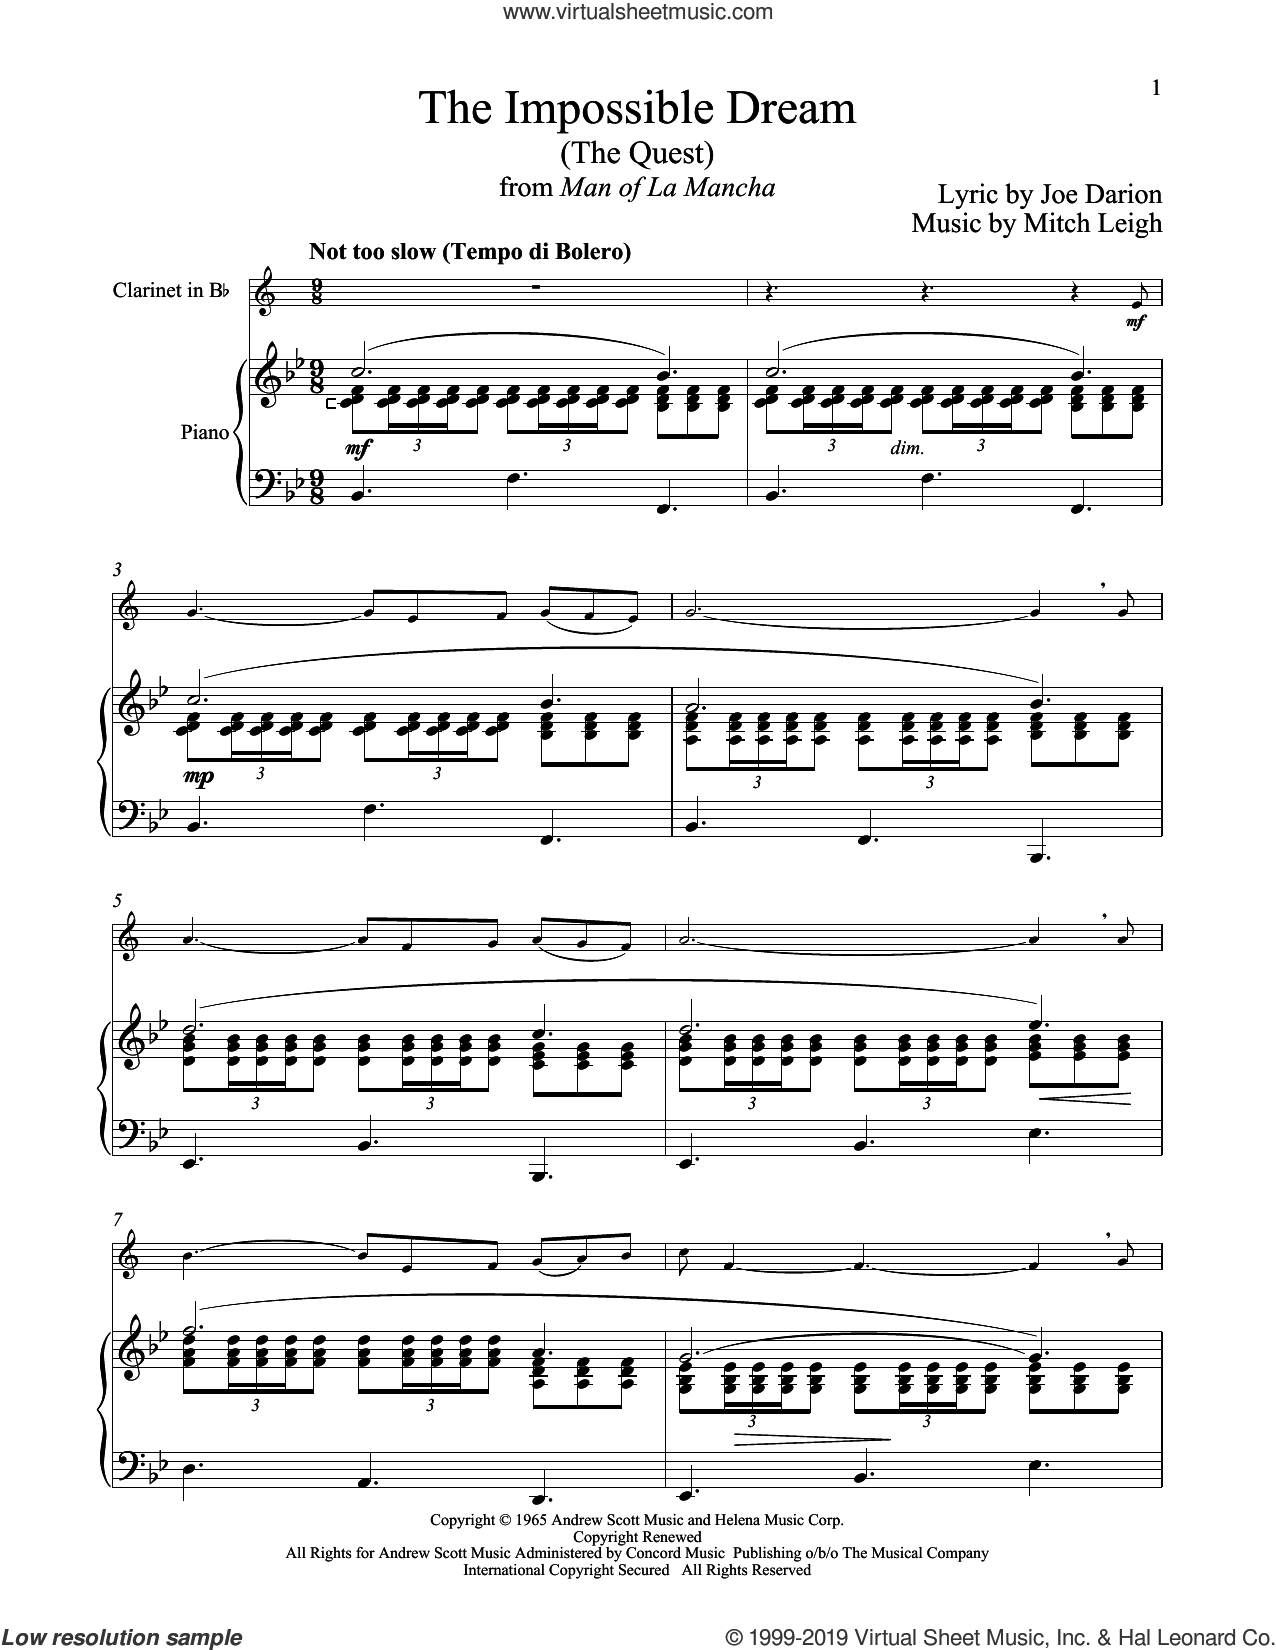 The Impossible Dream (The Quest) (from Man Of La Mancha) sheet music for clarinet and piano by Mitch Leigh and Joe Darion, intermediate skill level